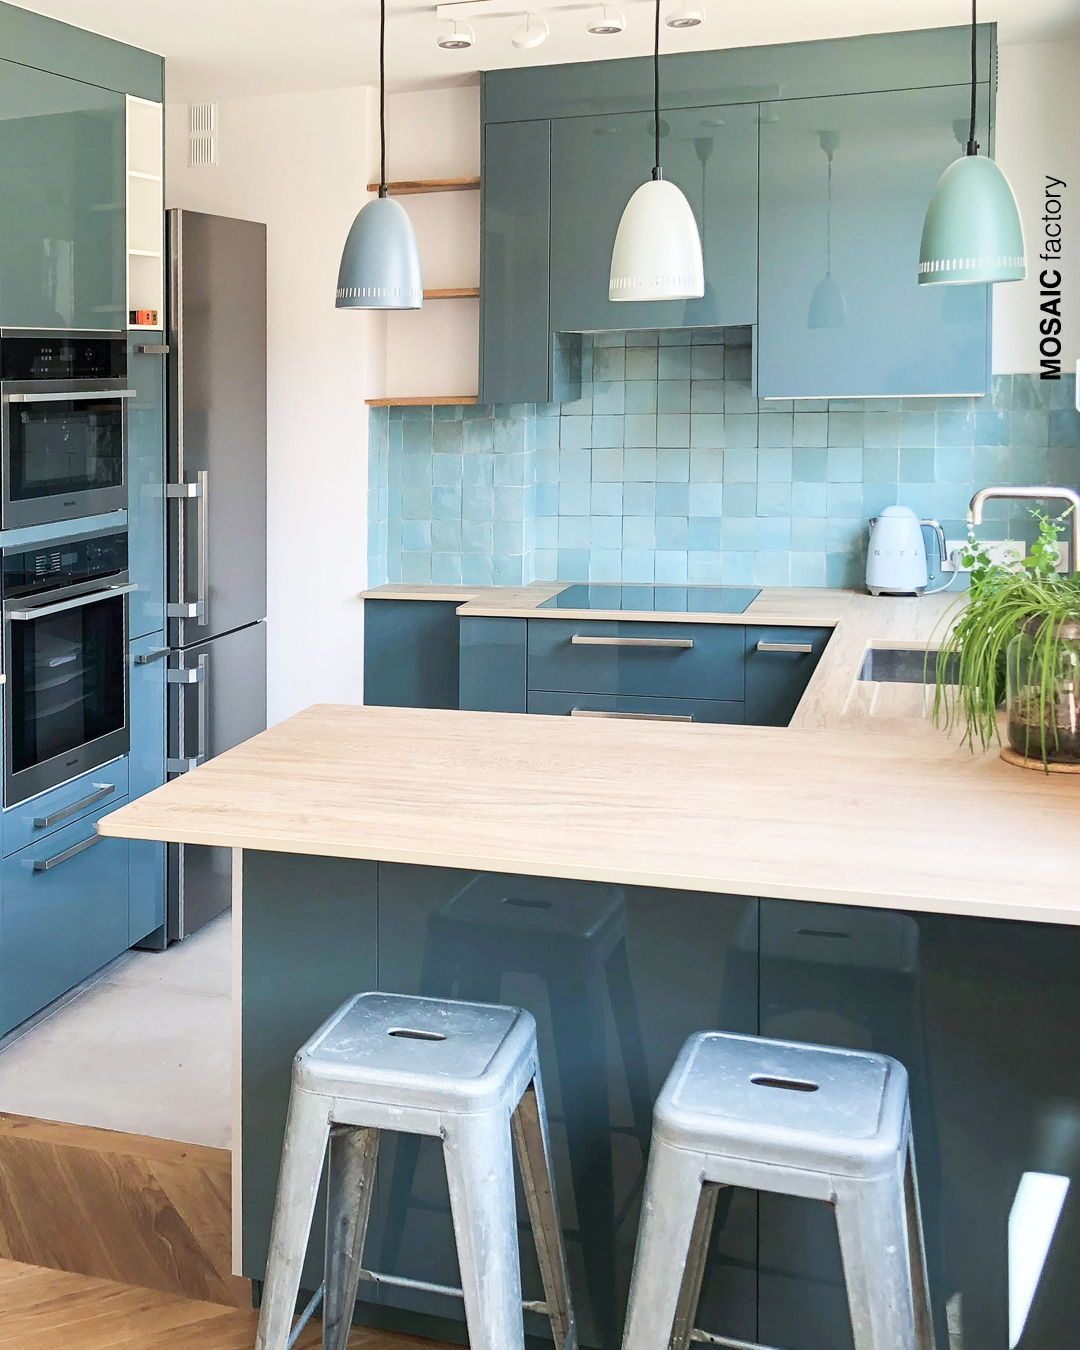 - Modern Kitchen With Light Turquoise Backsplash Wall Tiles. The